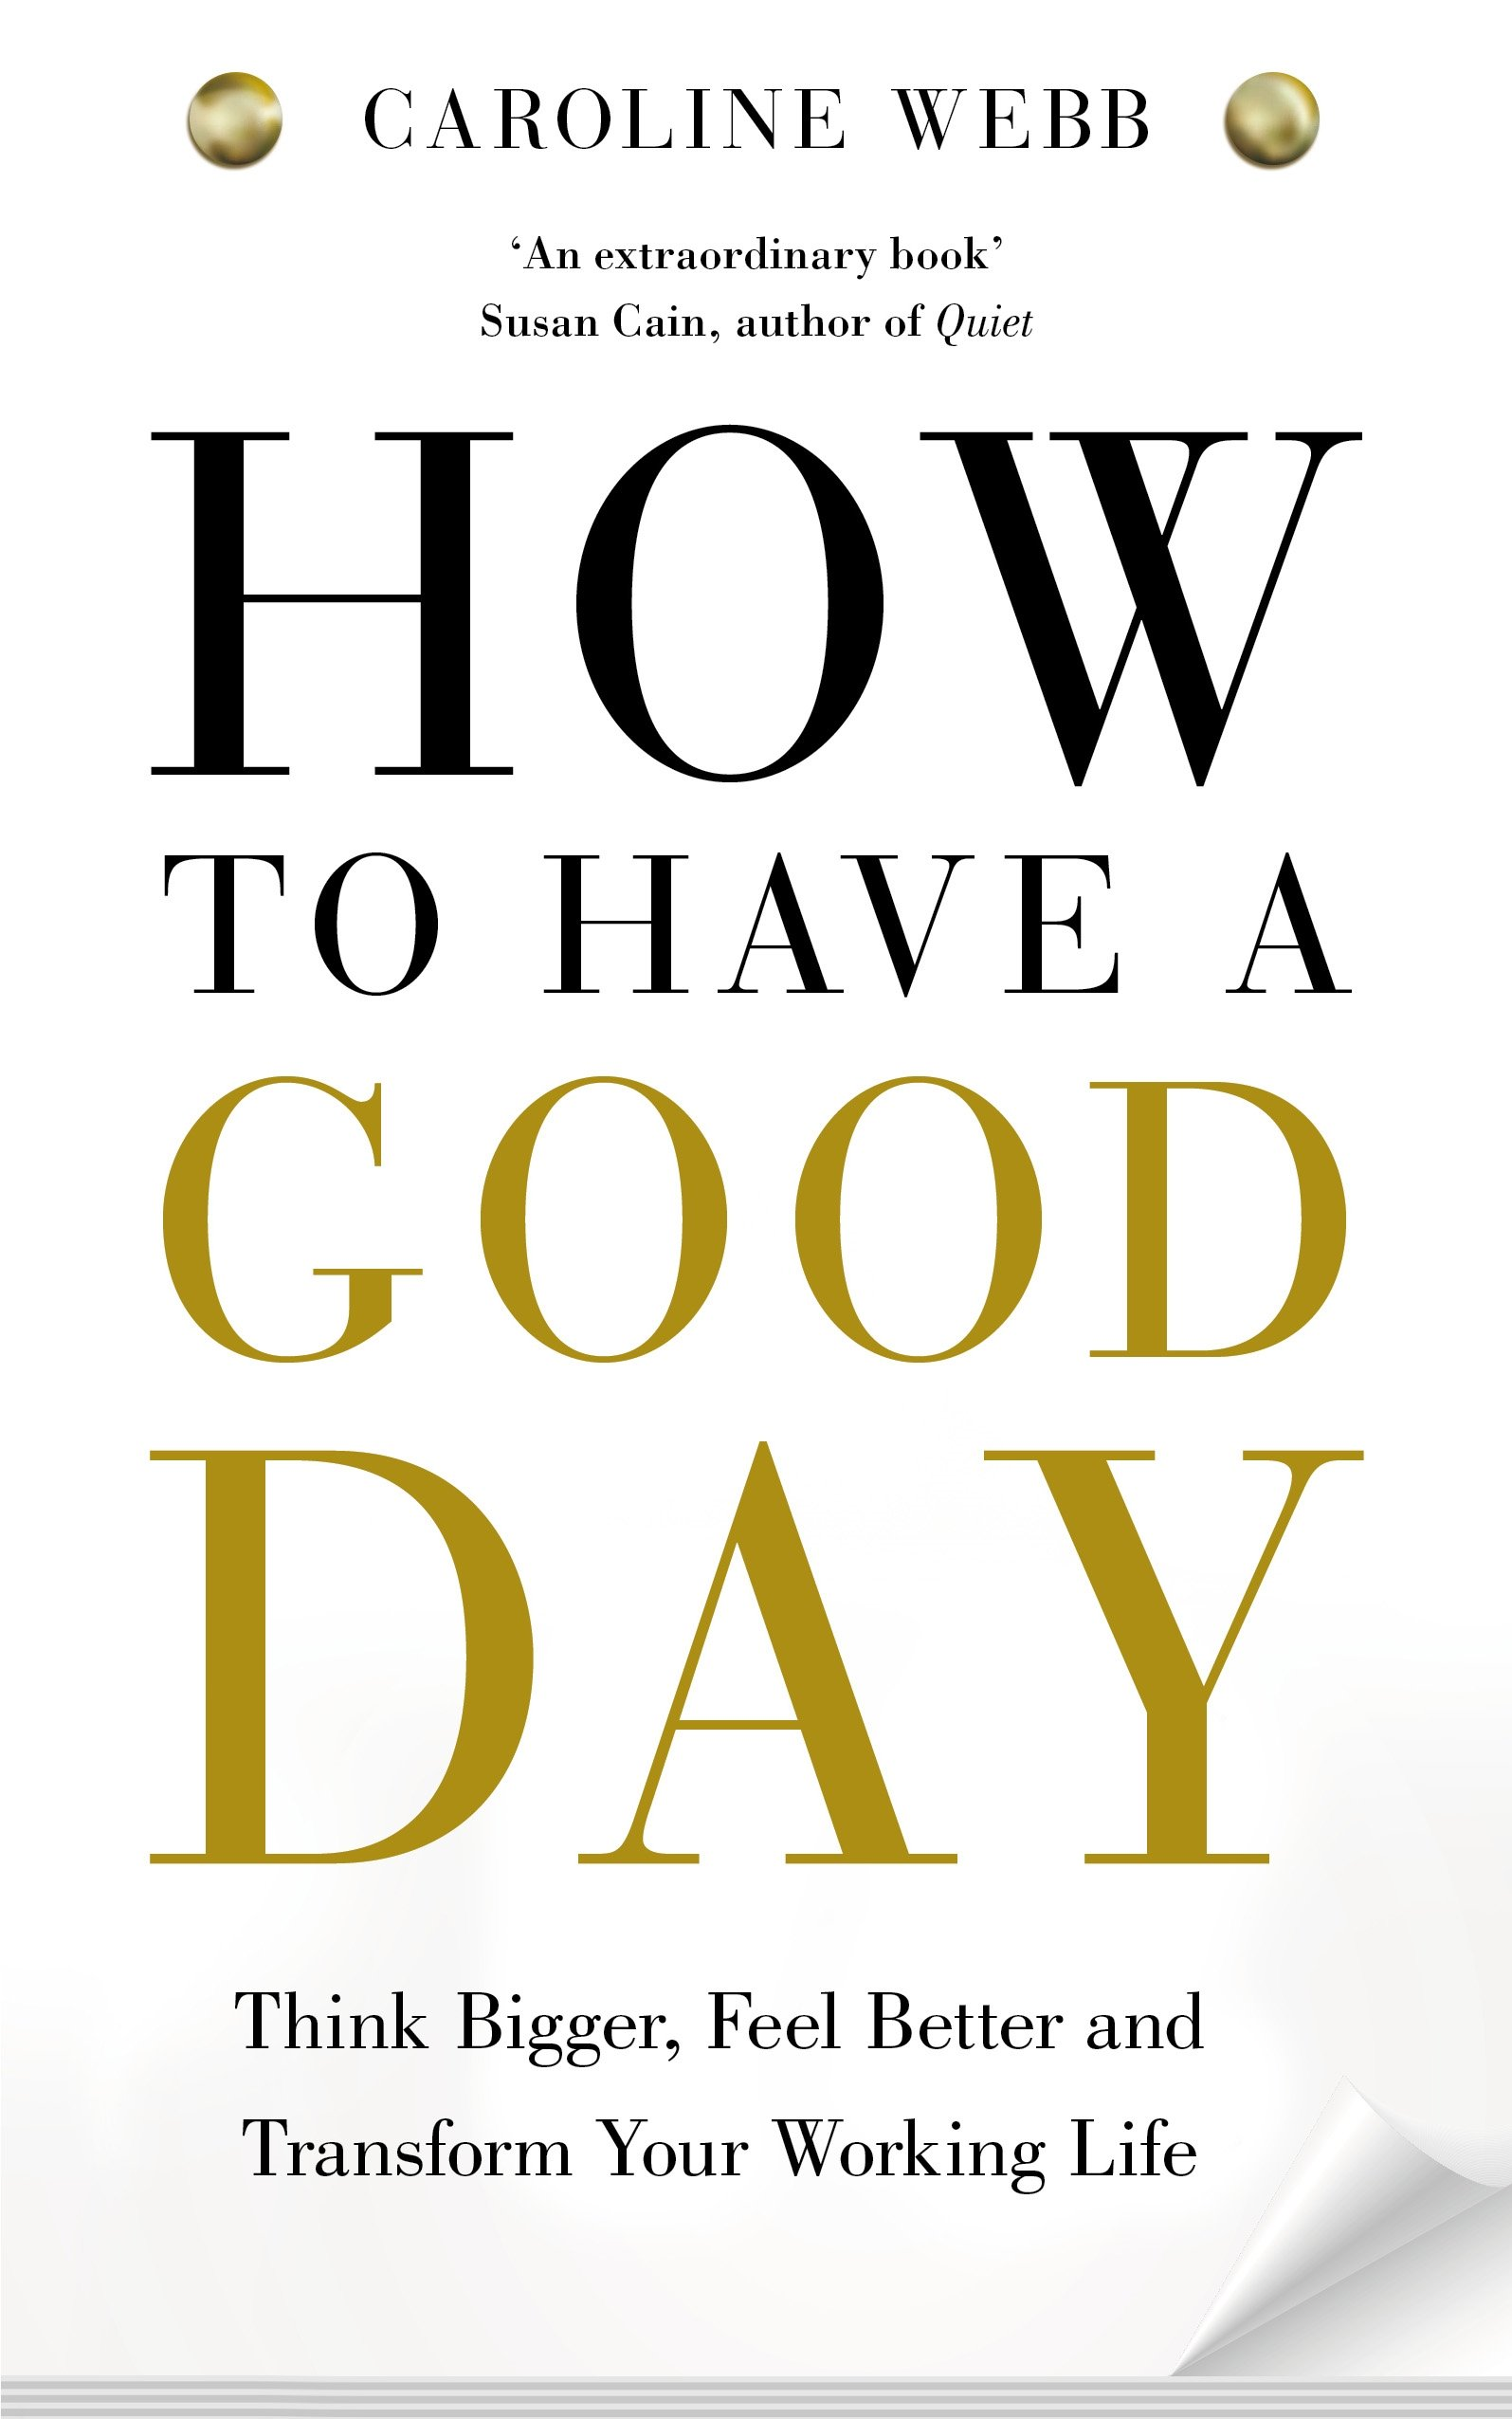 How To Have A Good Day: The Essential Toolkit For A Productive Day At Work  And Beyond: Amazon: Caroline Webb: 9781447276517: Books